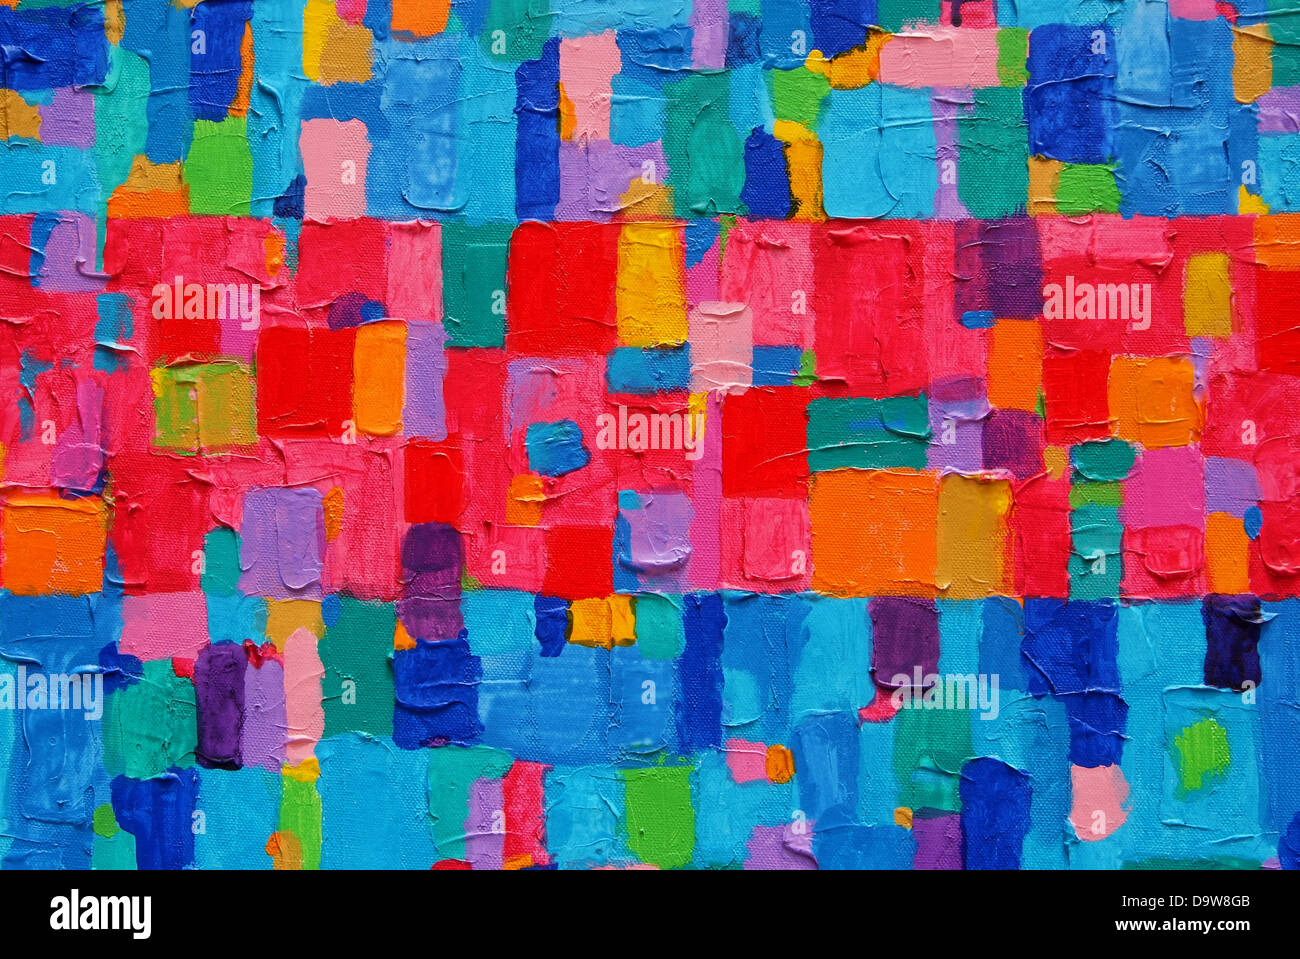 Red Blue Painting Texture Background And Colorful Image Of An